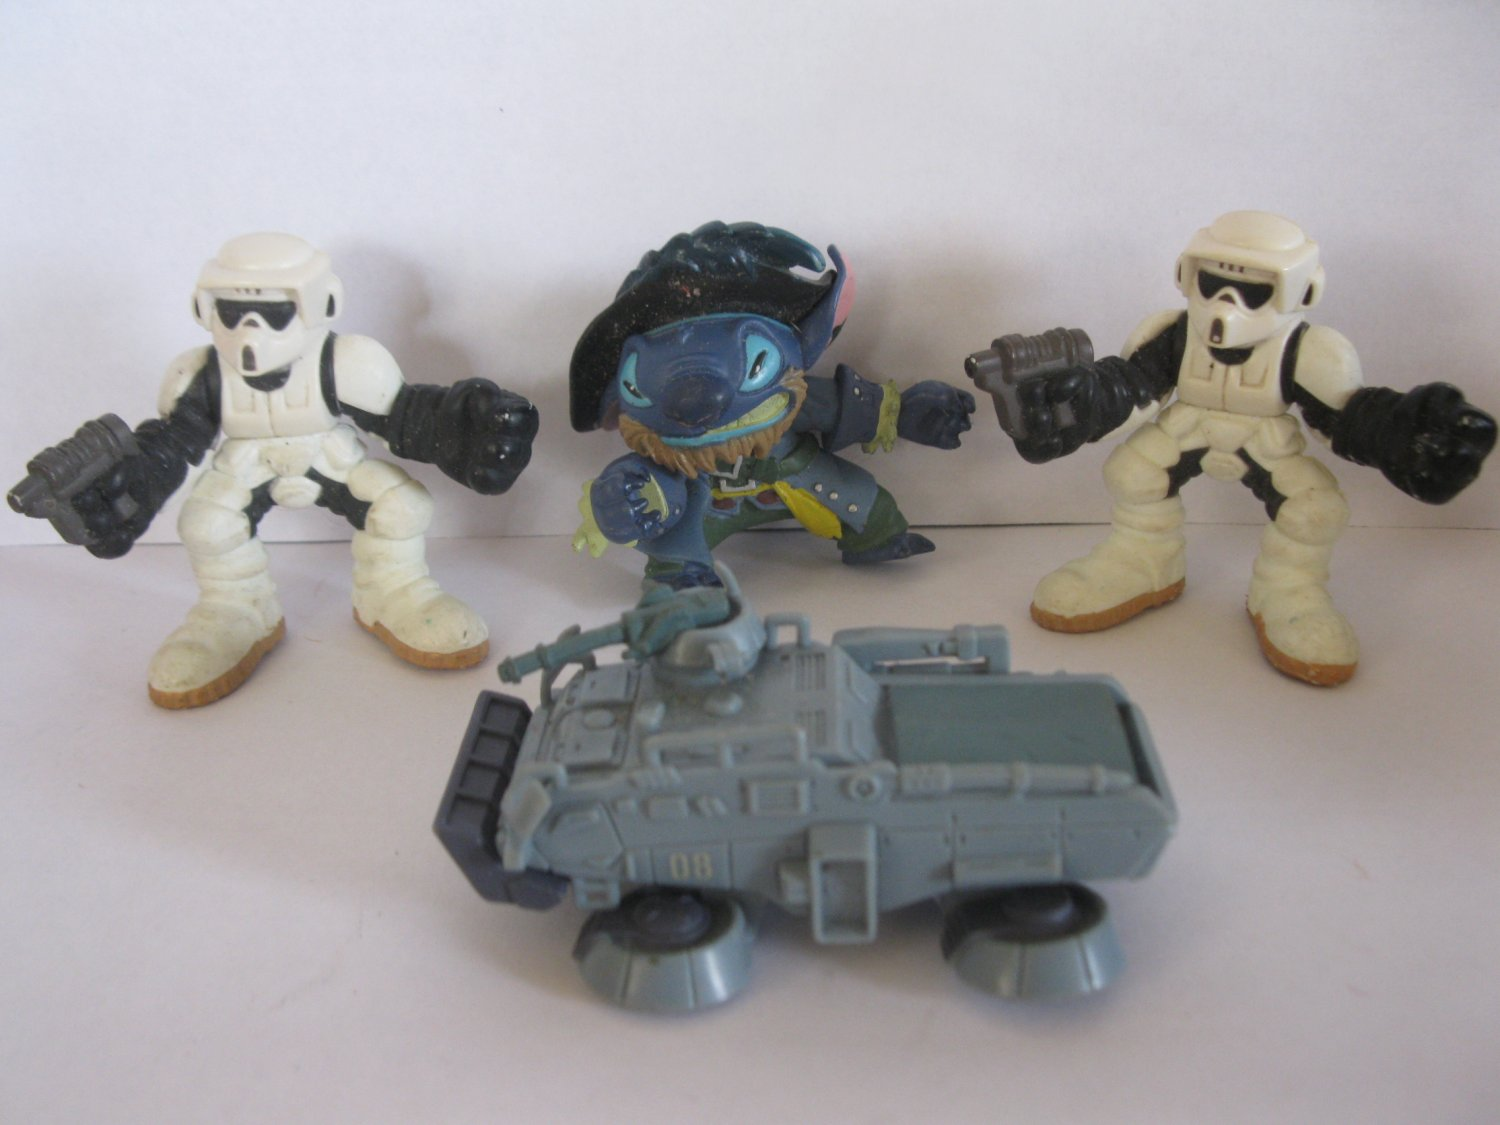 cool set of Star Wars Galactic Heroes Storm Troopers, Stitch and other toys..